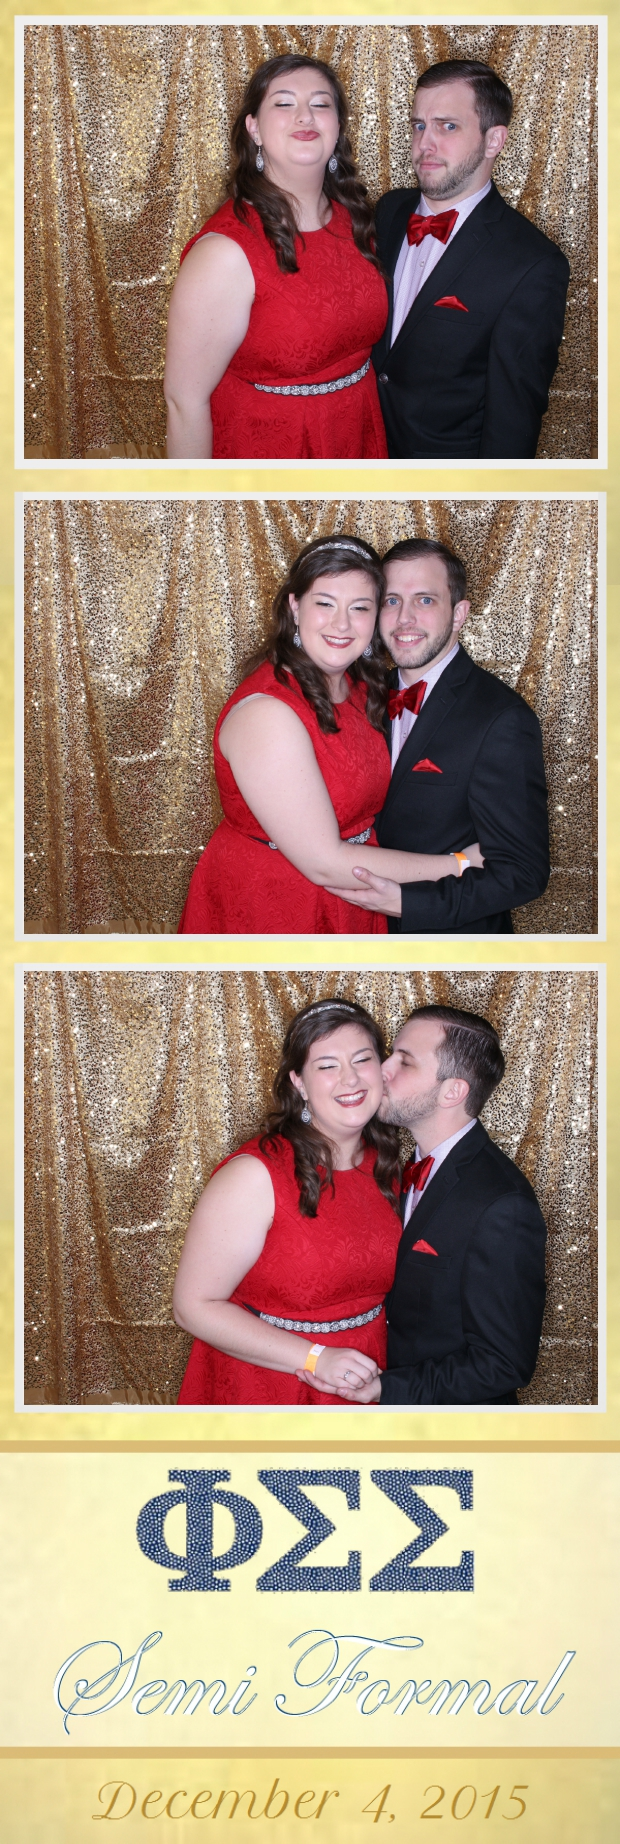 Guest House Events Photo Booth Phi Sigma Sigma Semi Formal (27).jpg